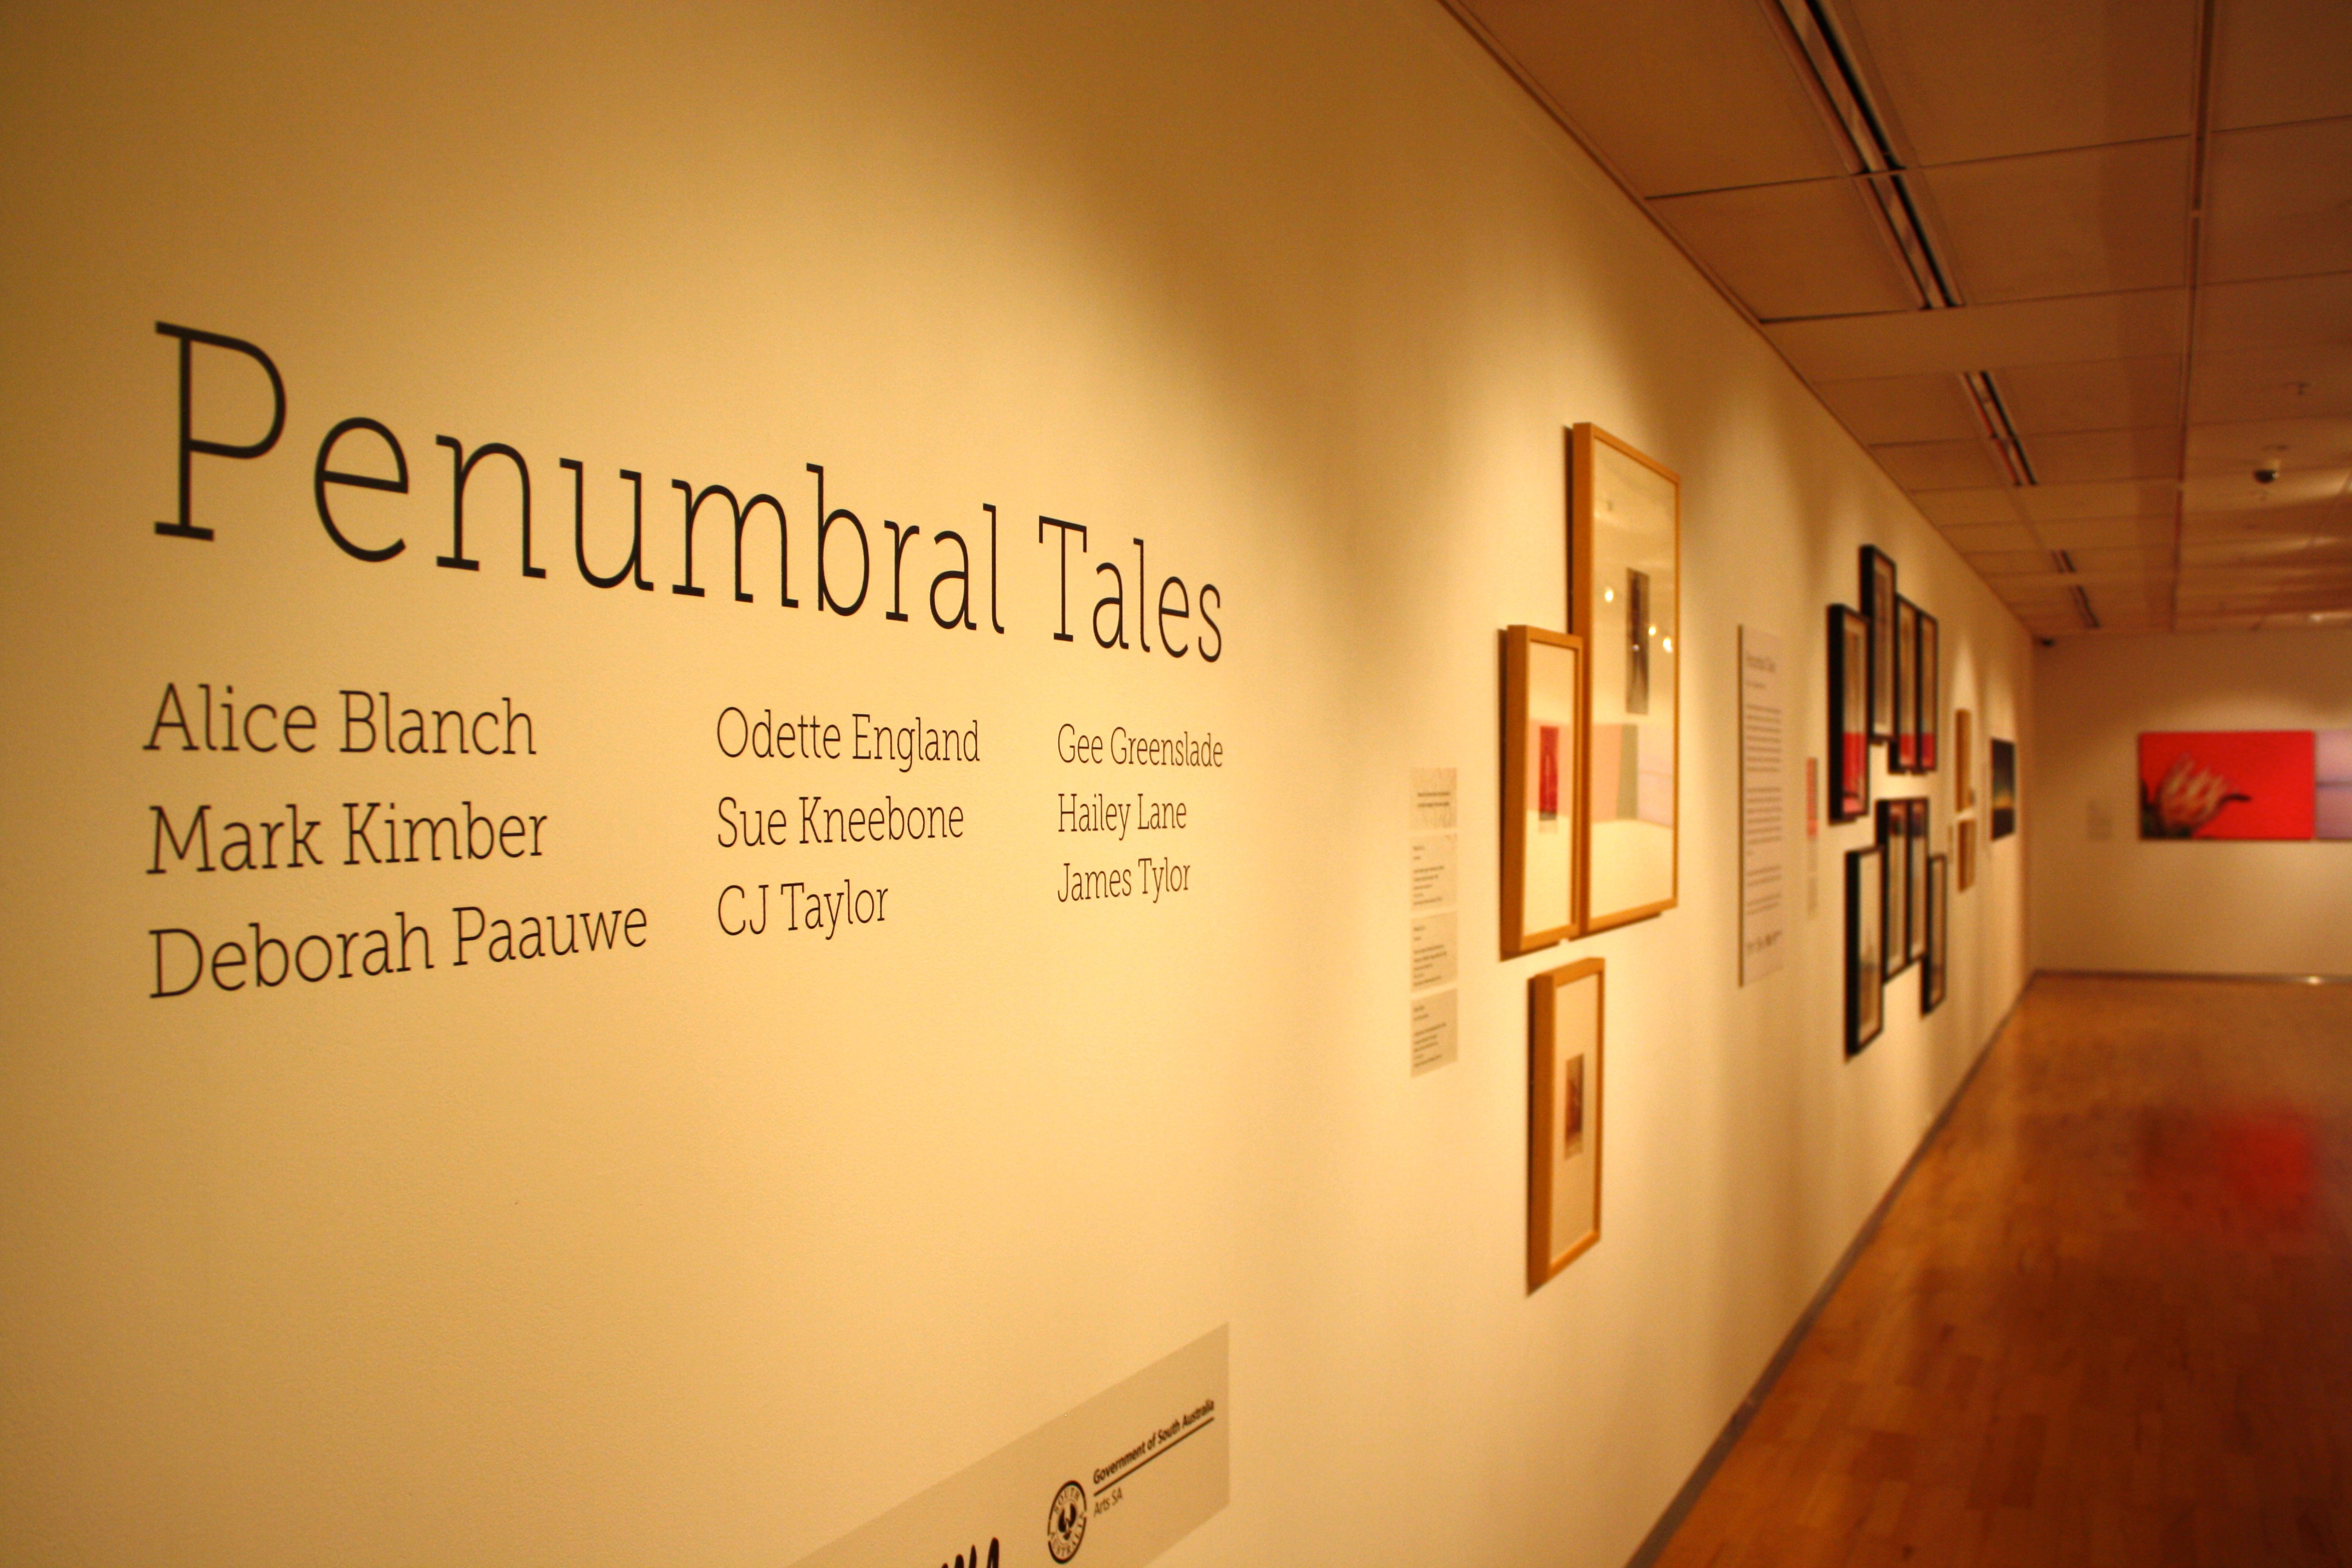 Penumbral Tales Art Exhibition - Adelaide